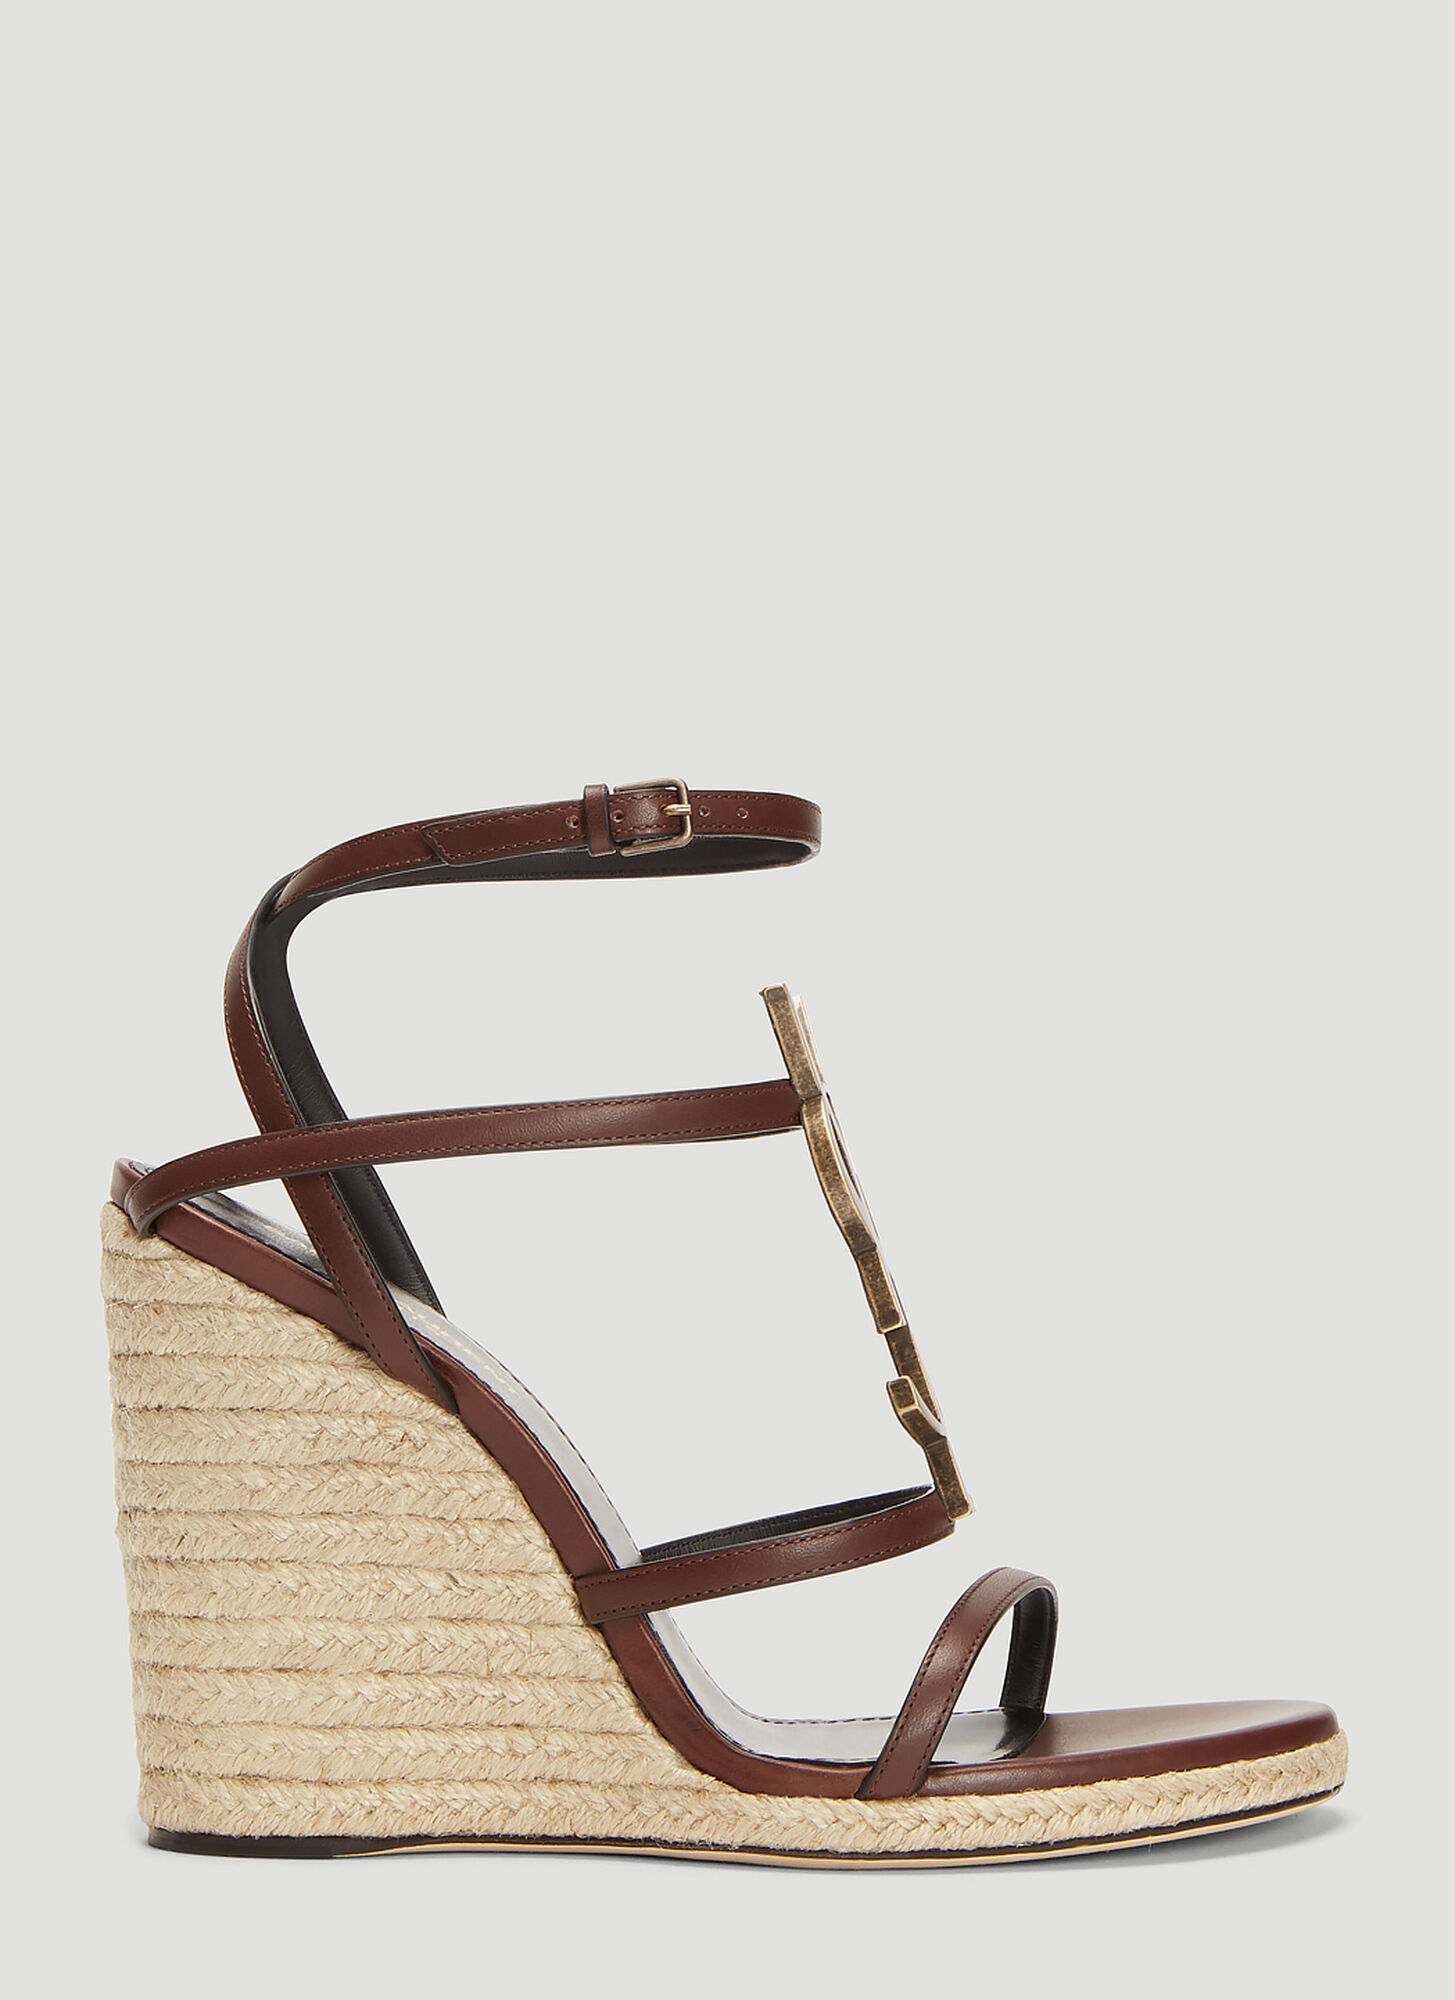 Saint Laurent Cassandra Espadrille Wedge Sandals in Brown